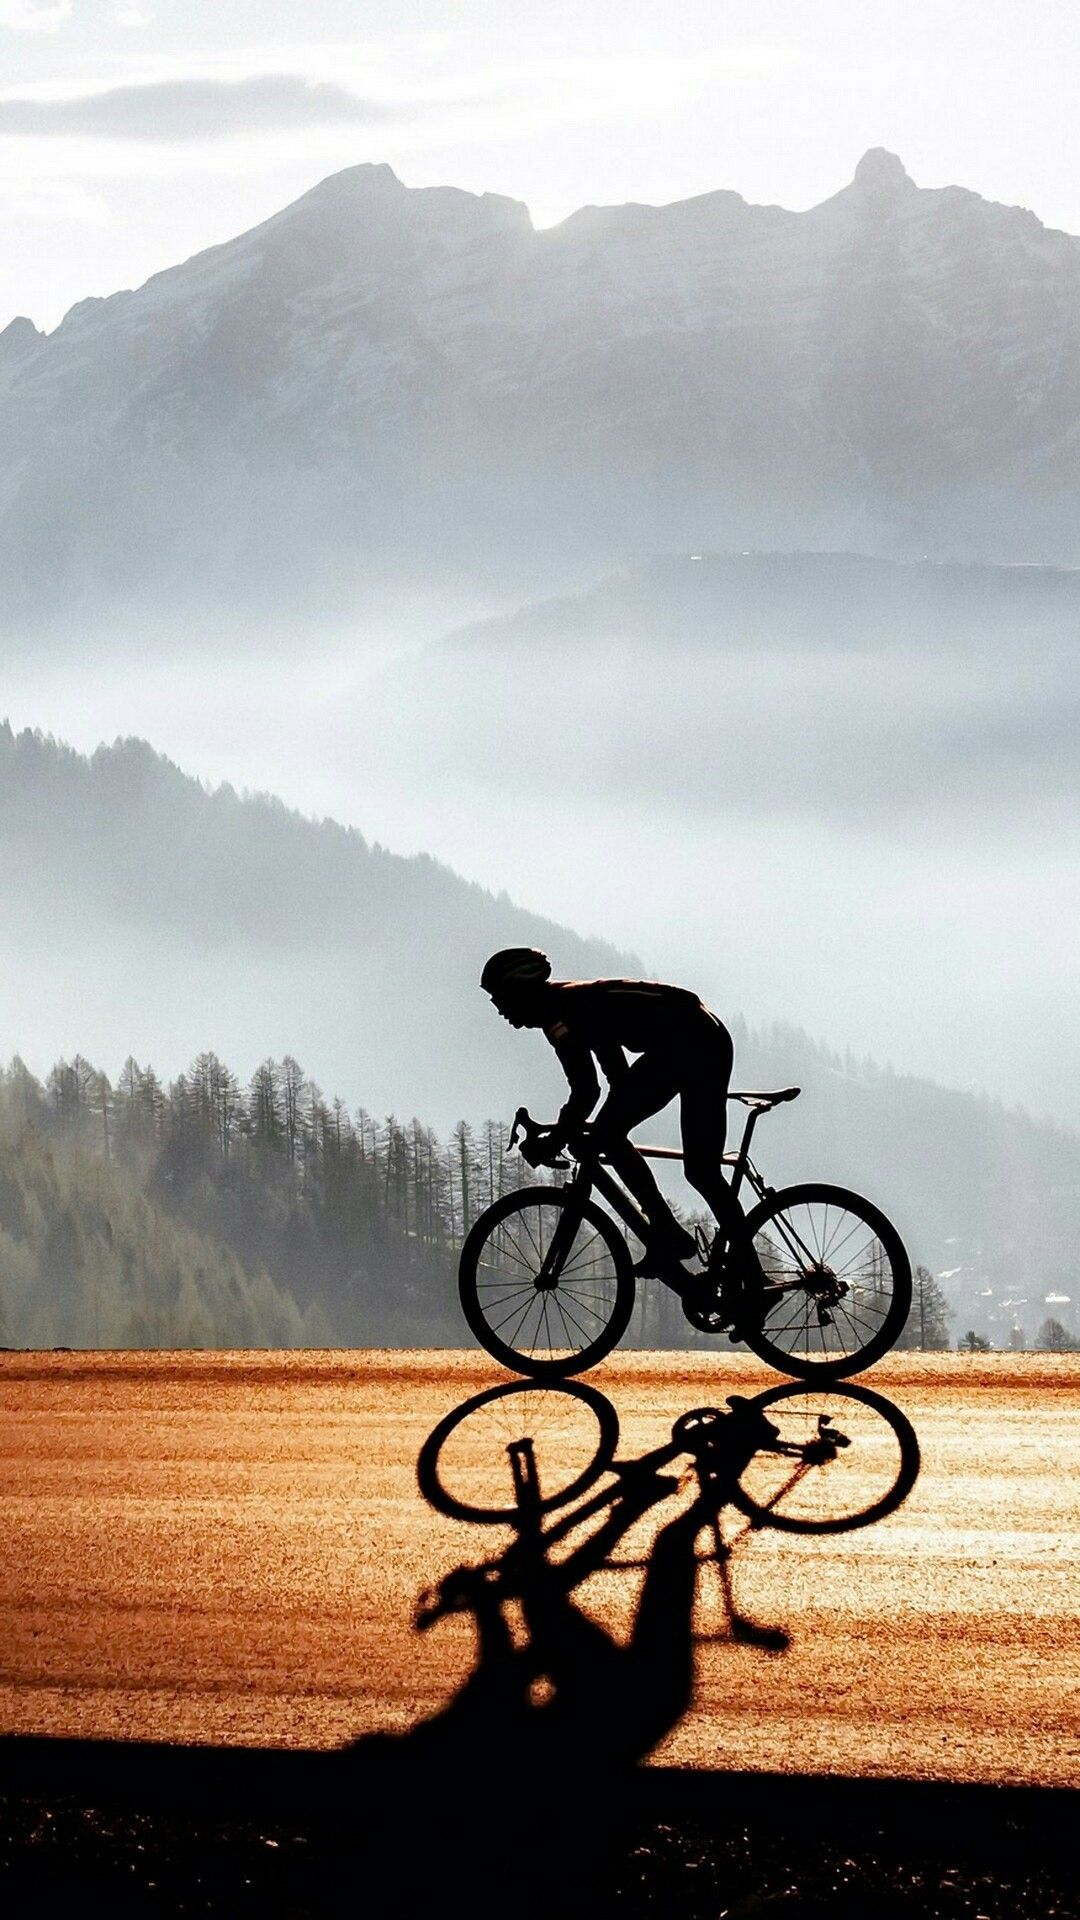 Pin By まるまさ On Sport Iphone Wallpaper Landscape Bicycle Wallpaper Cycling Photography